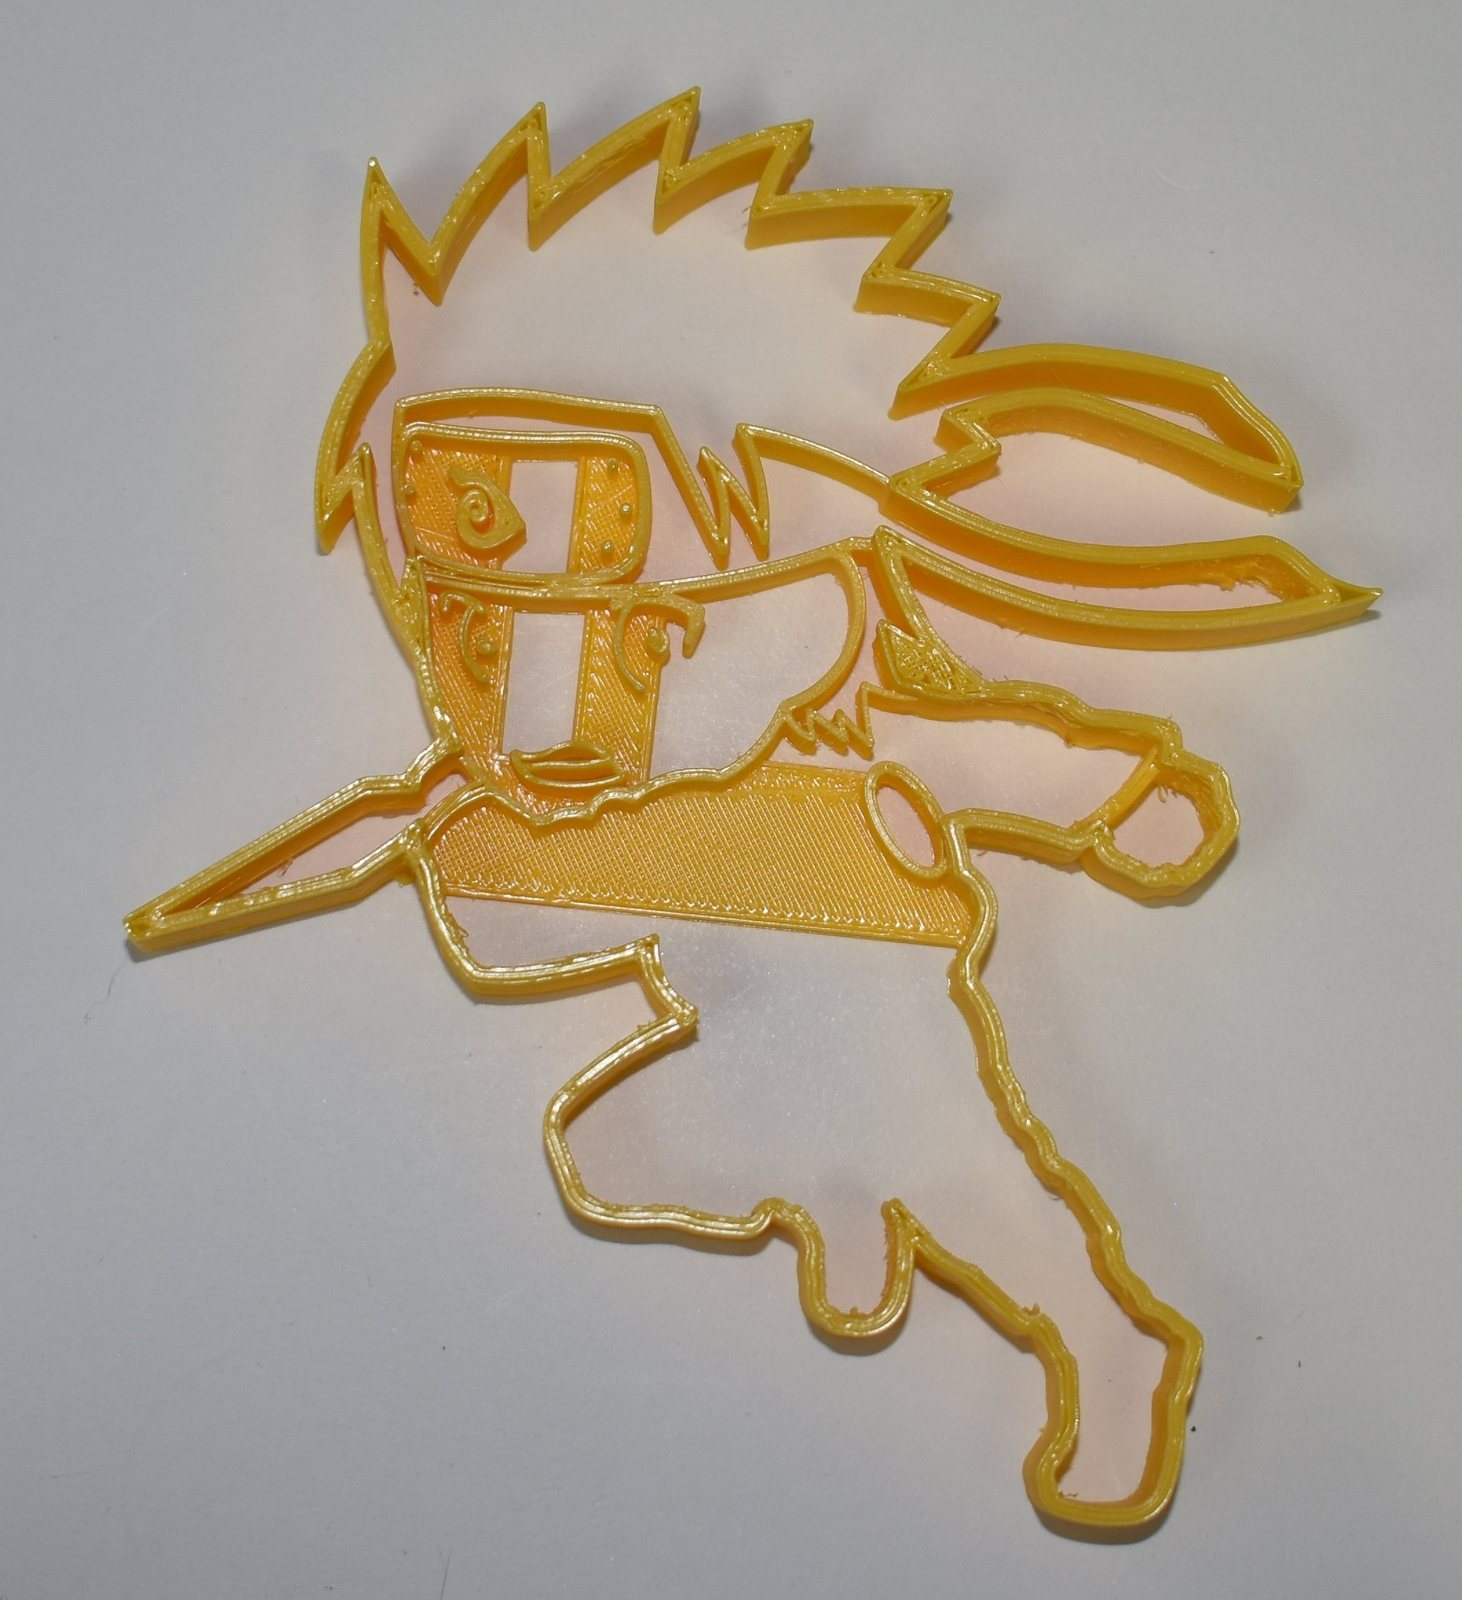 Primary image for Chibi Naruto Uzumaki Shippuden Ninja Anime Cookie Cutter 3D Printed USA PR752